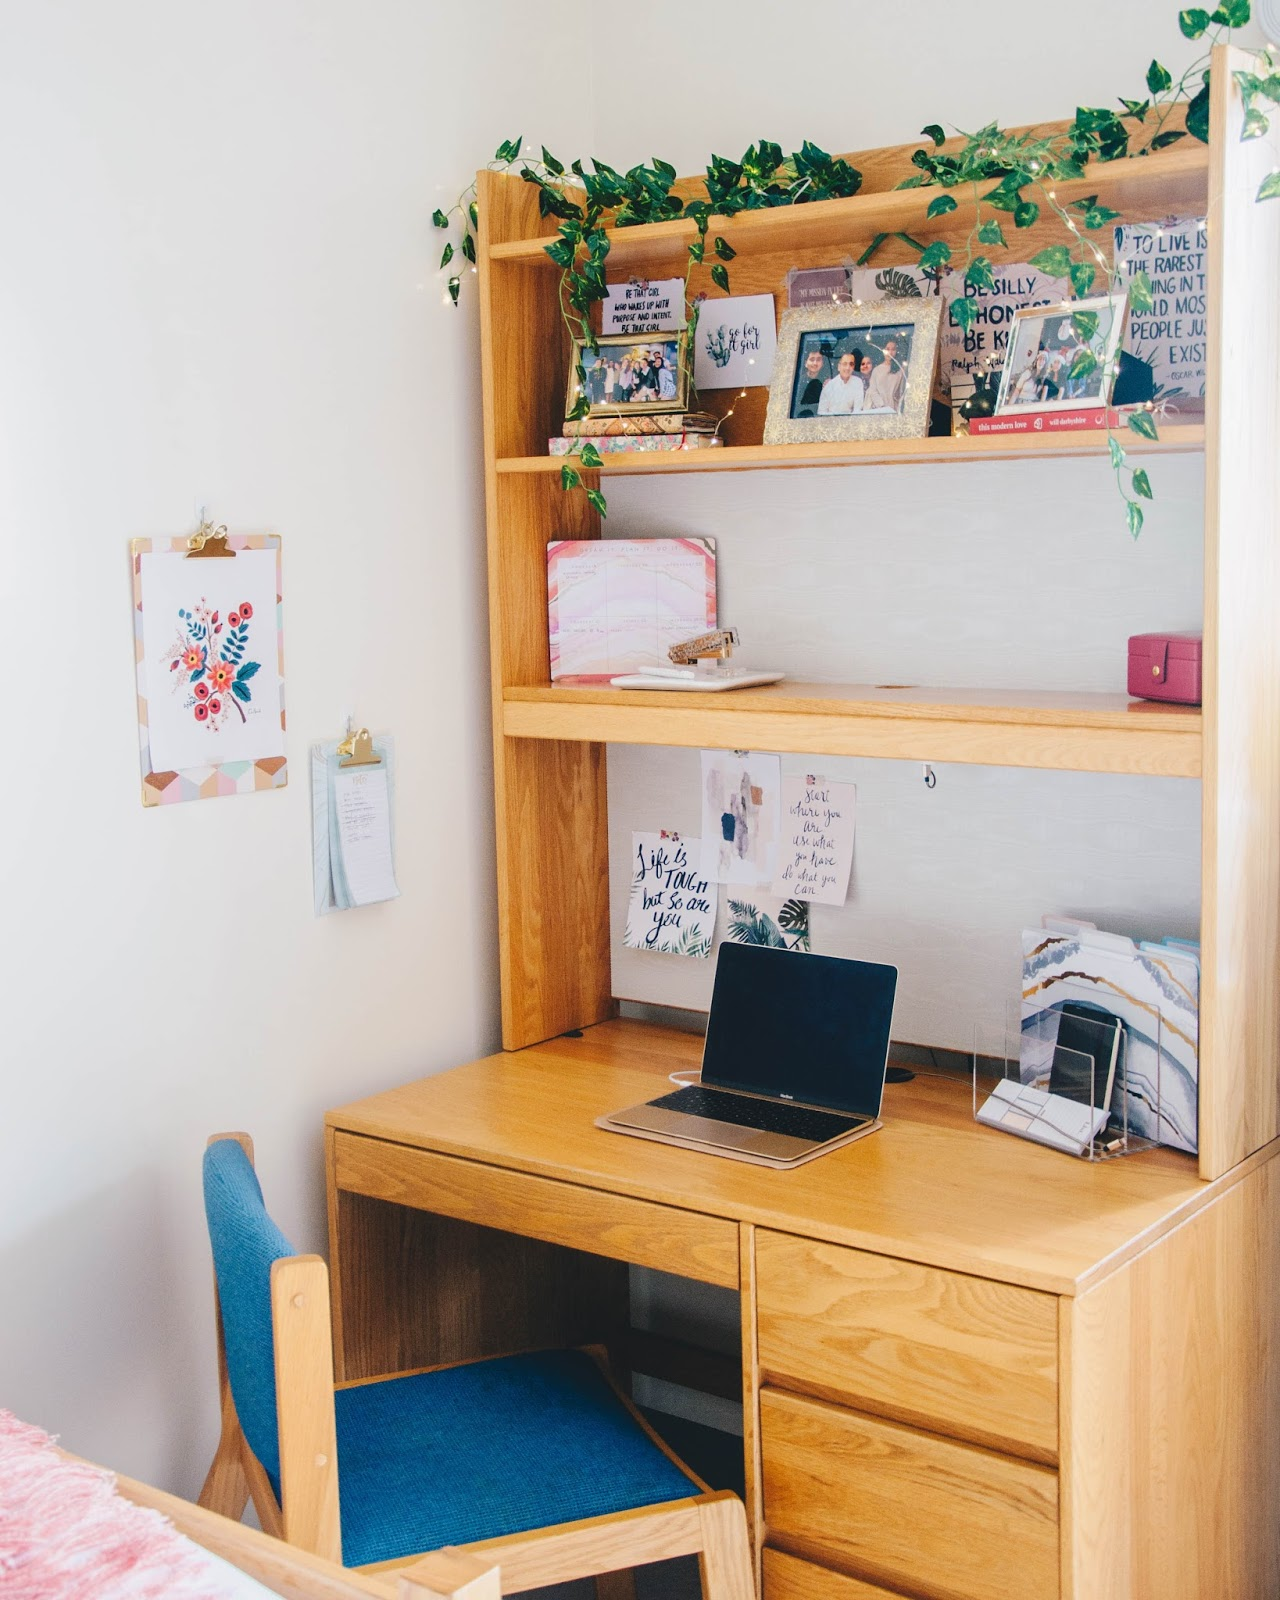 By Rabeyah | A Life & Style Project: Dorm Room Decor